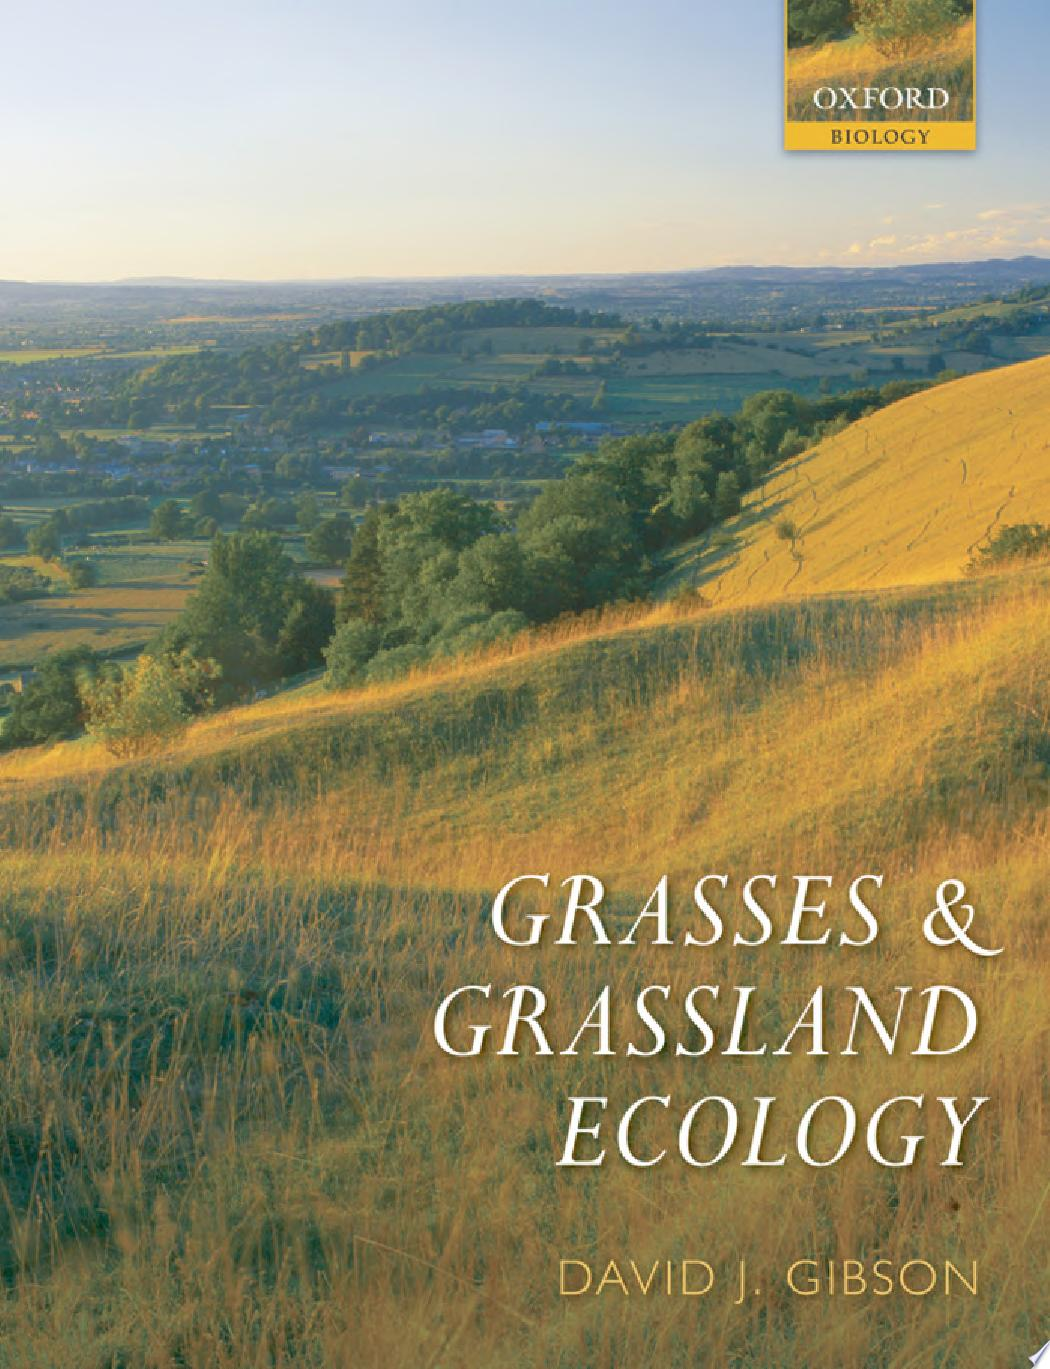 Grasses and Grassland Ecology